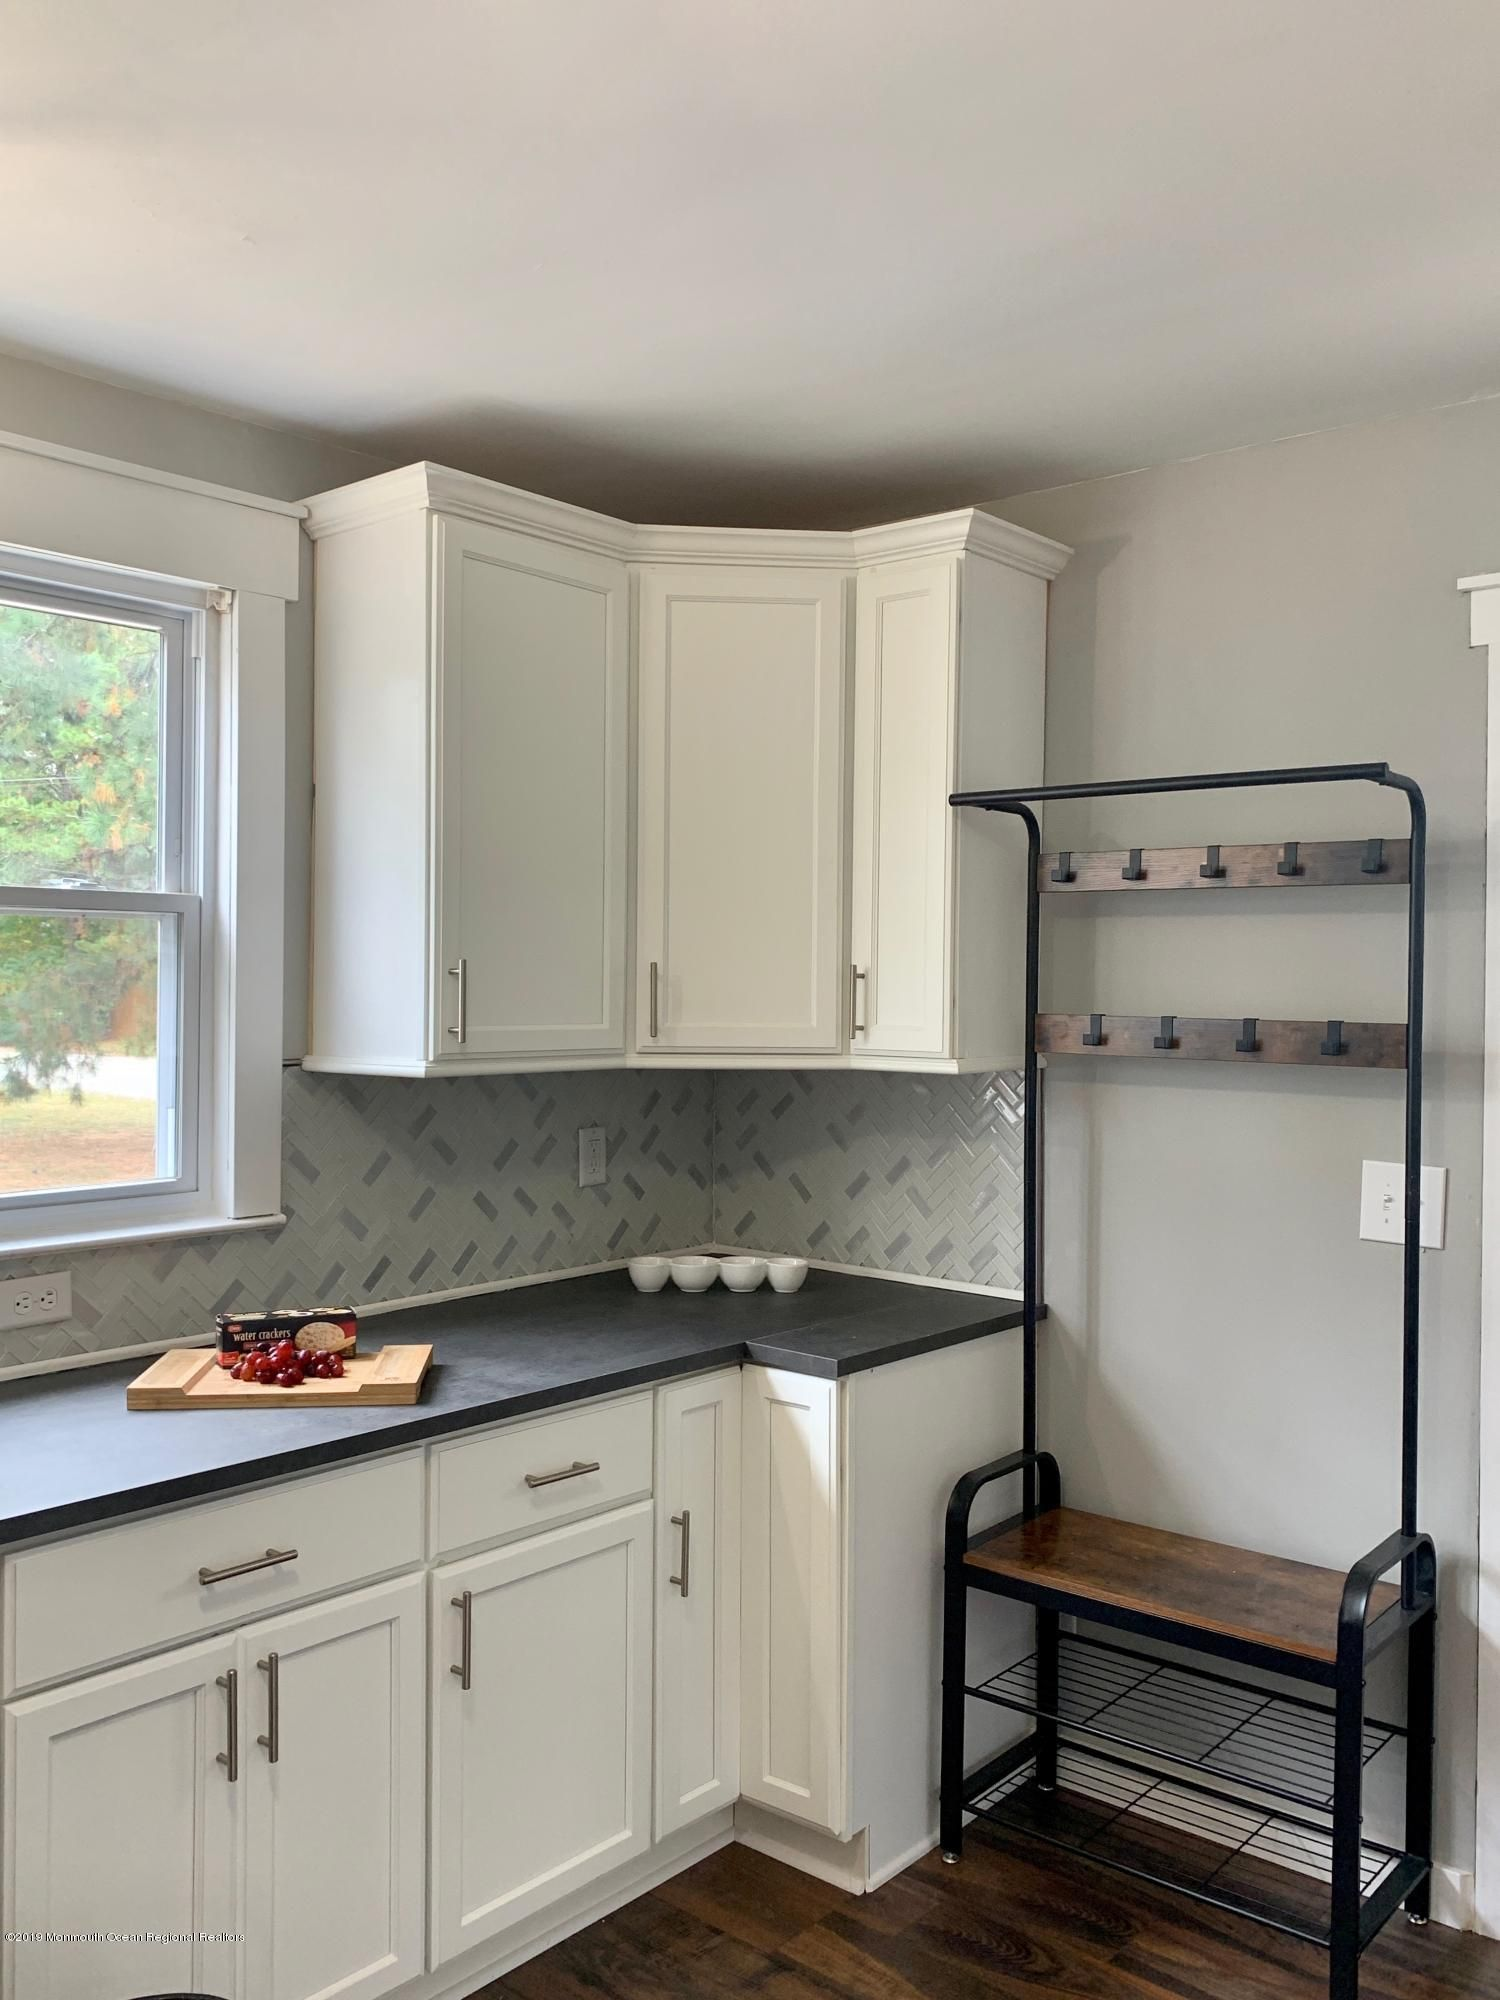 1241 6th Avenue Toms River Nj 08757 Photos Videos More Kitchen Cabinets Toms River Home And Family